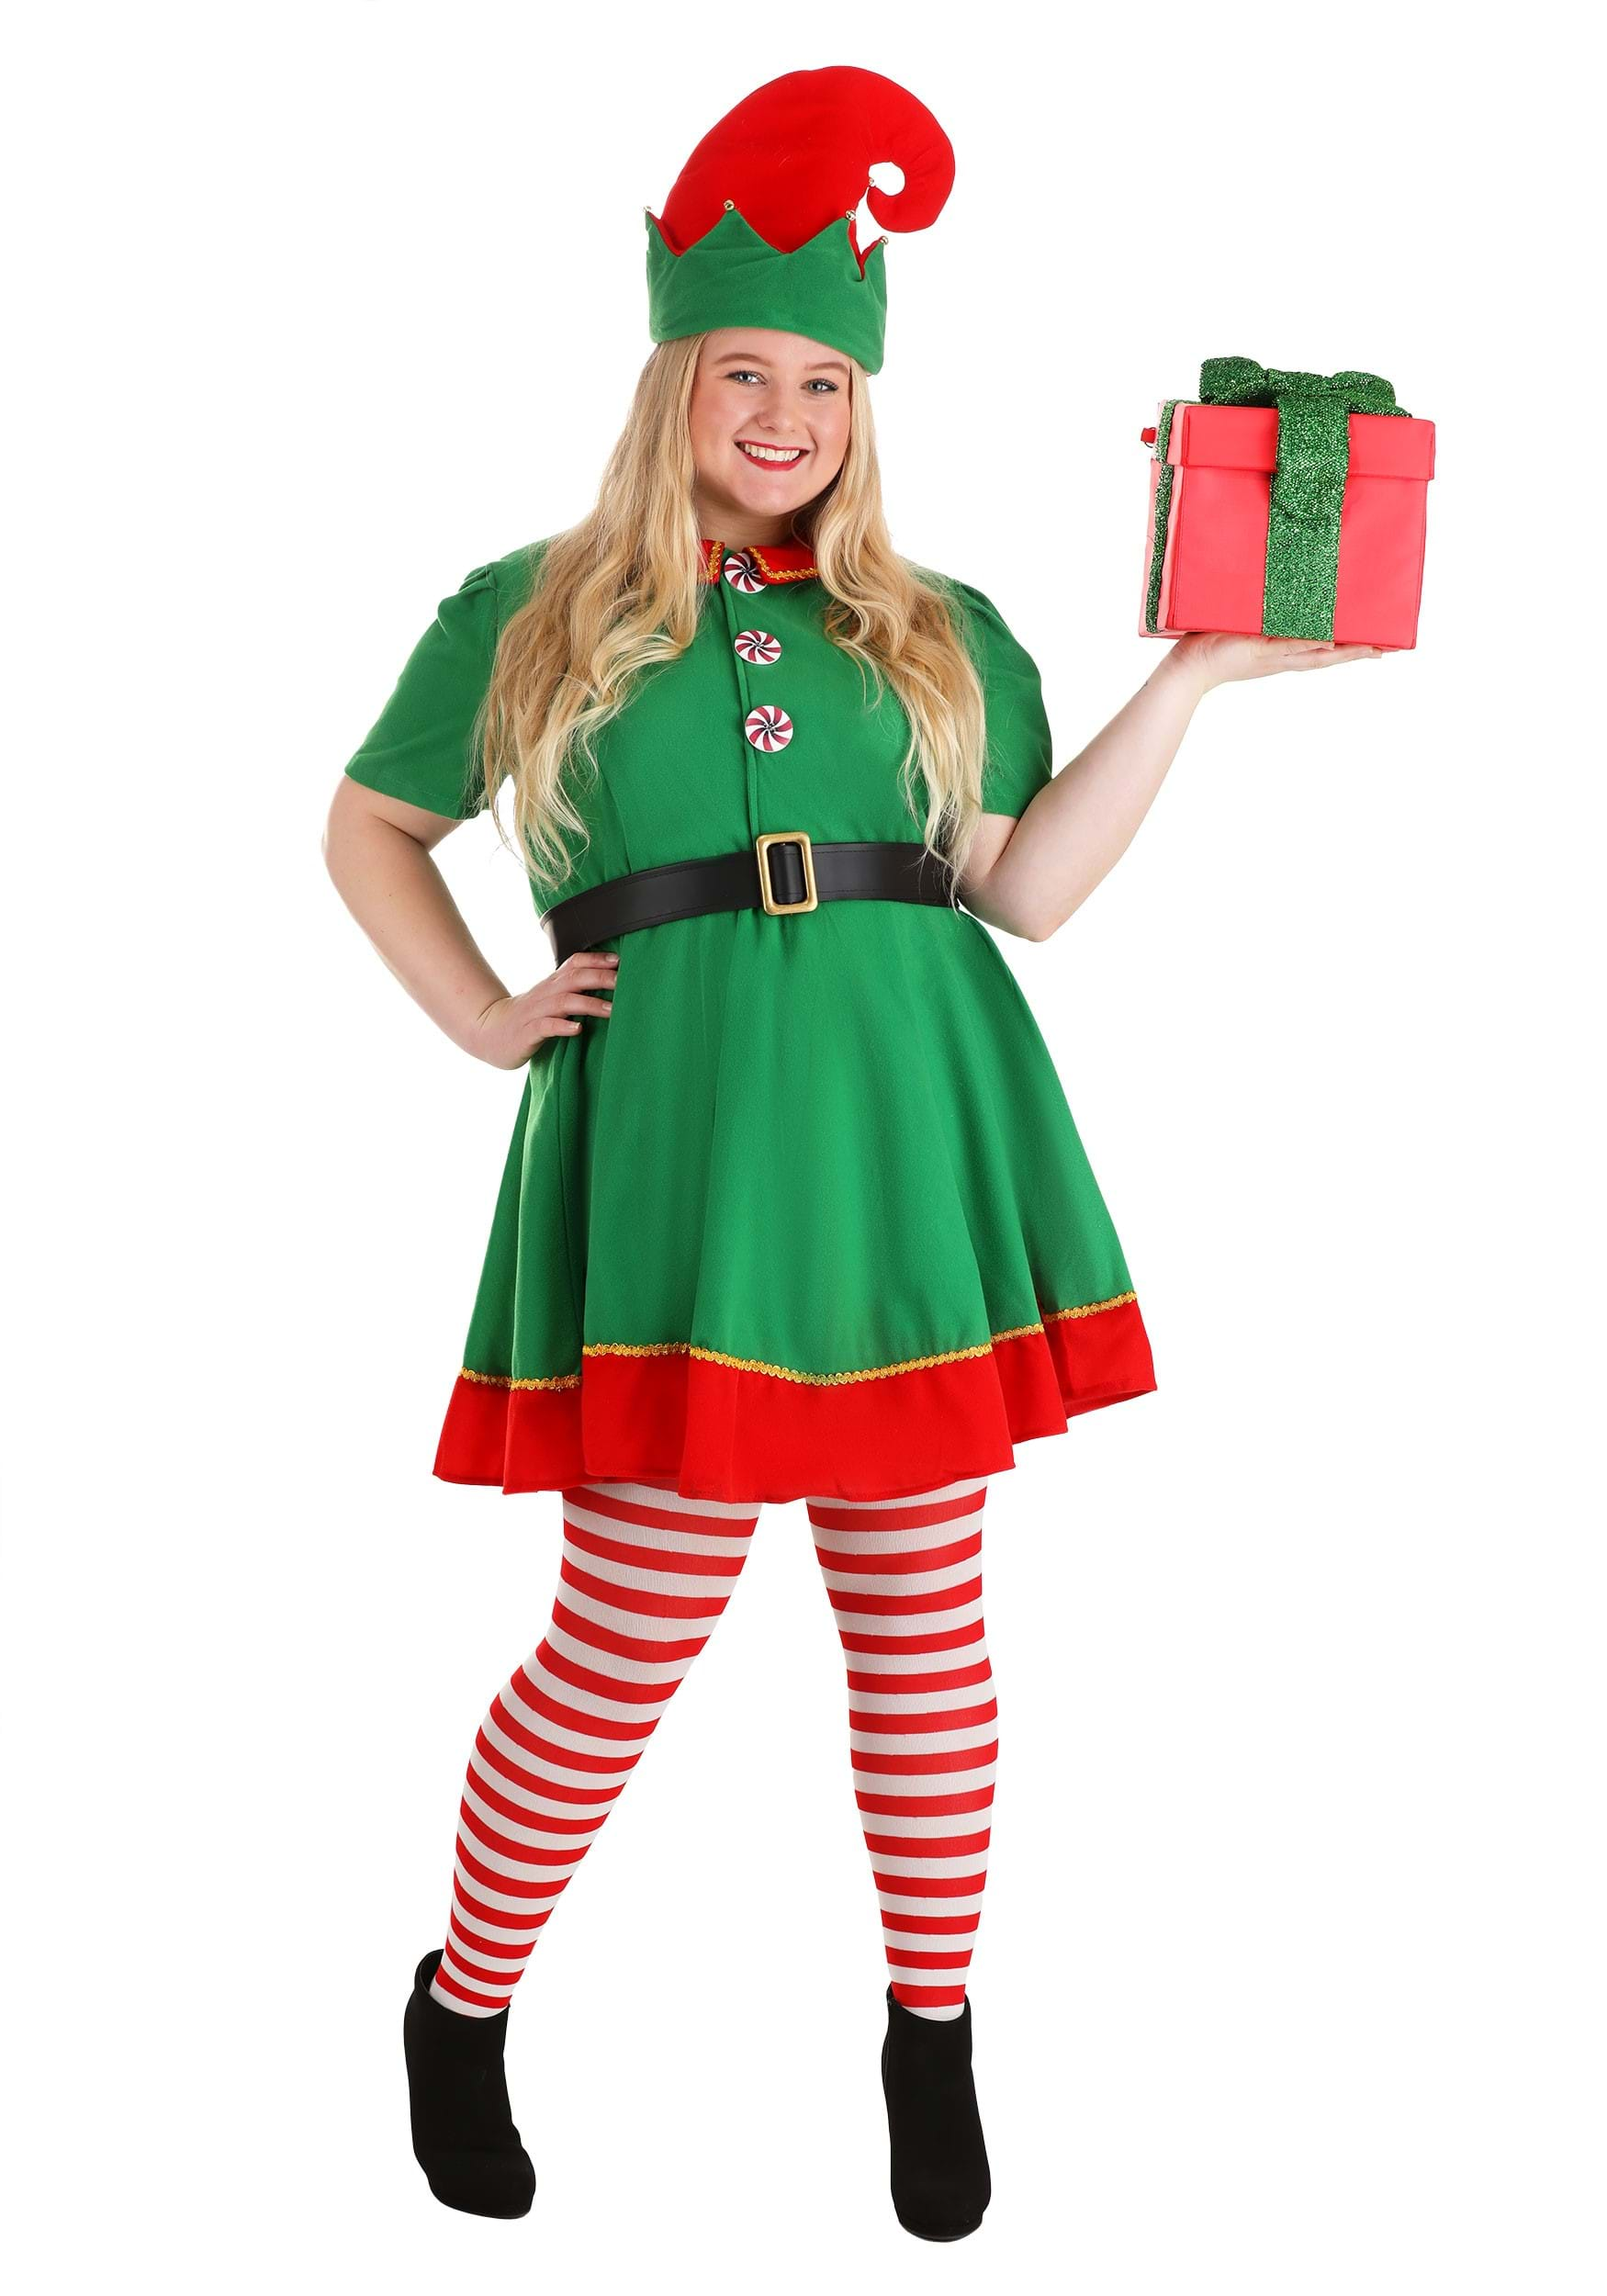 costumes Santa women halloween